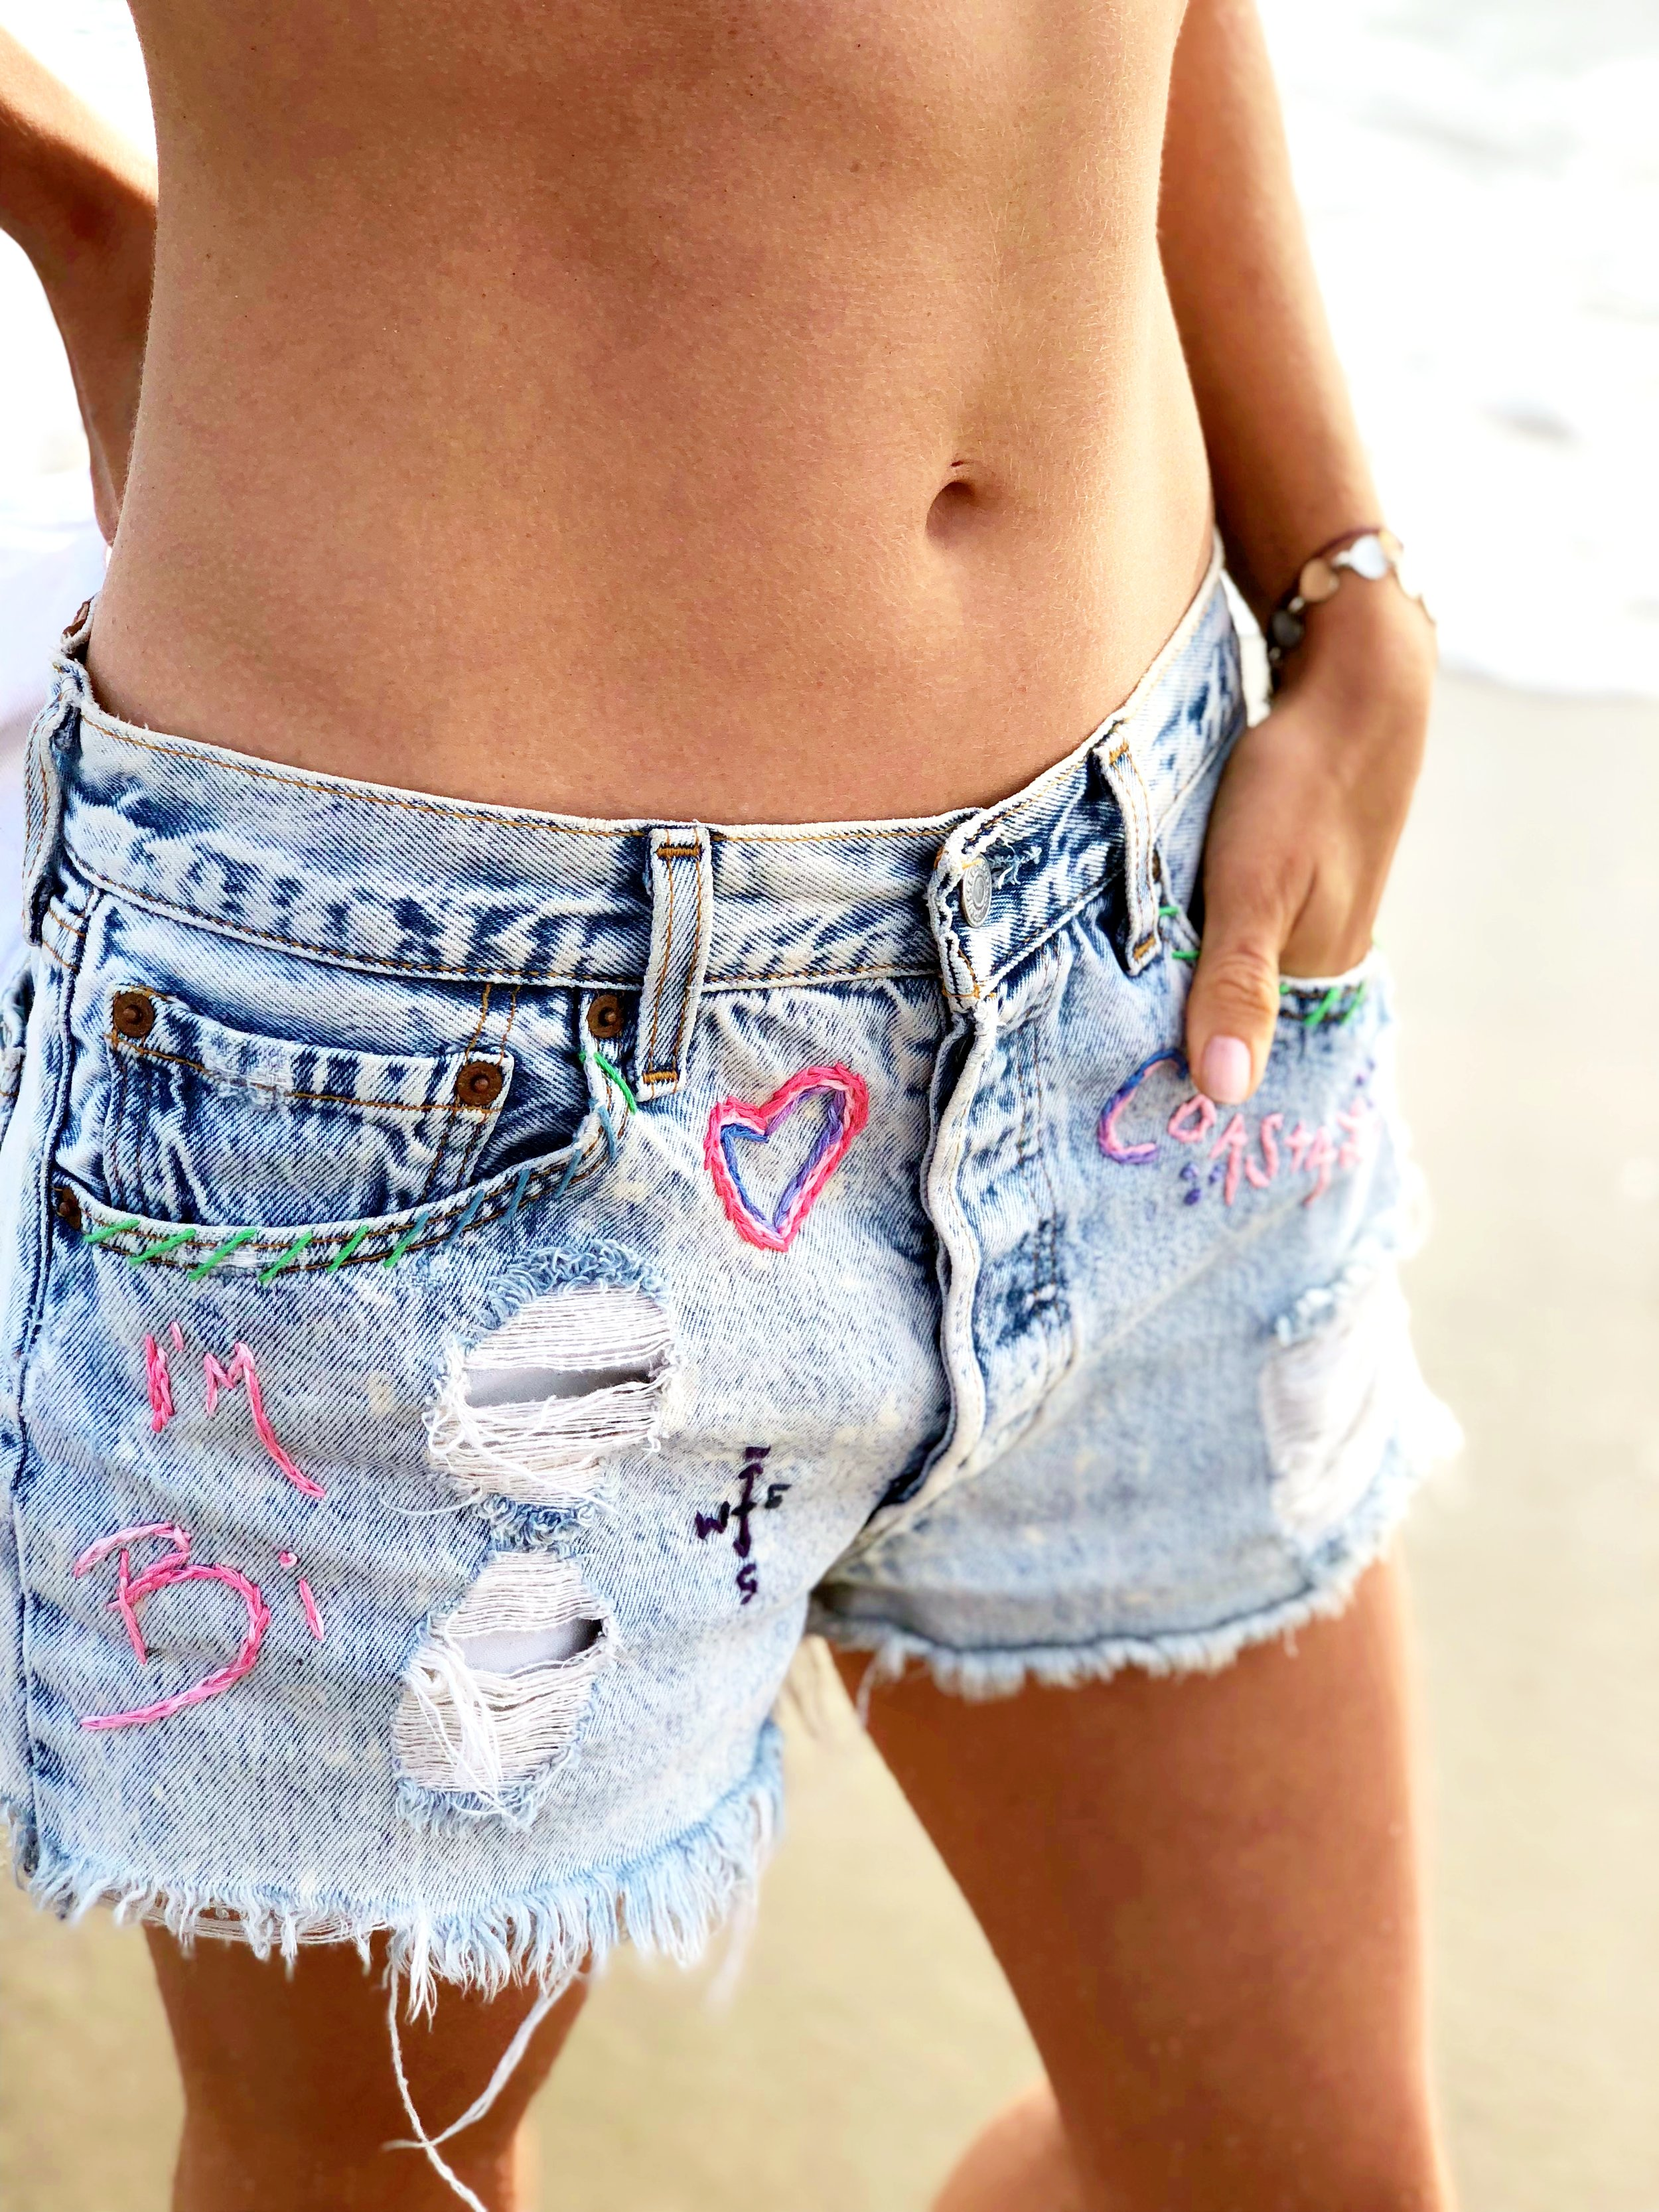 Vagablonde Bi-Coastal Shorts $95 ... Coming soon! Message me for details :-)